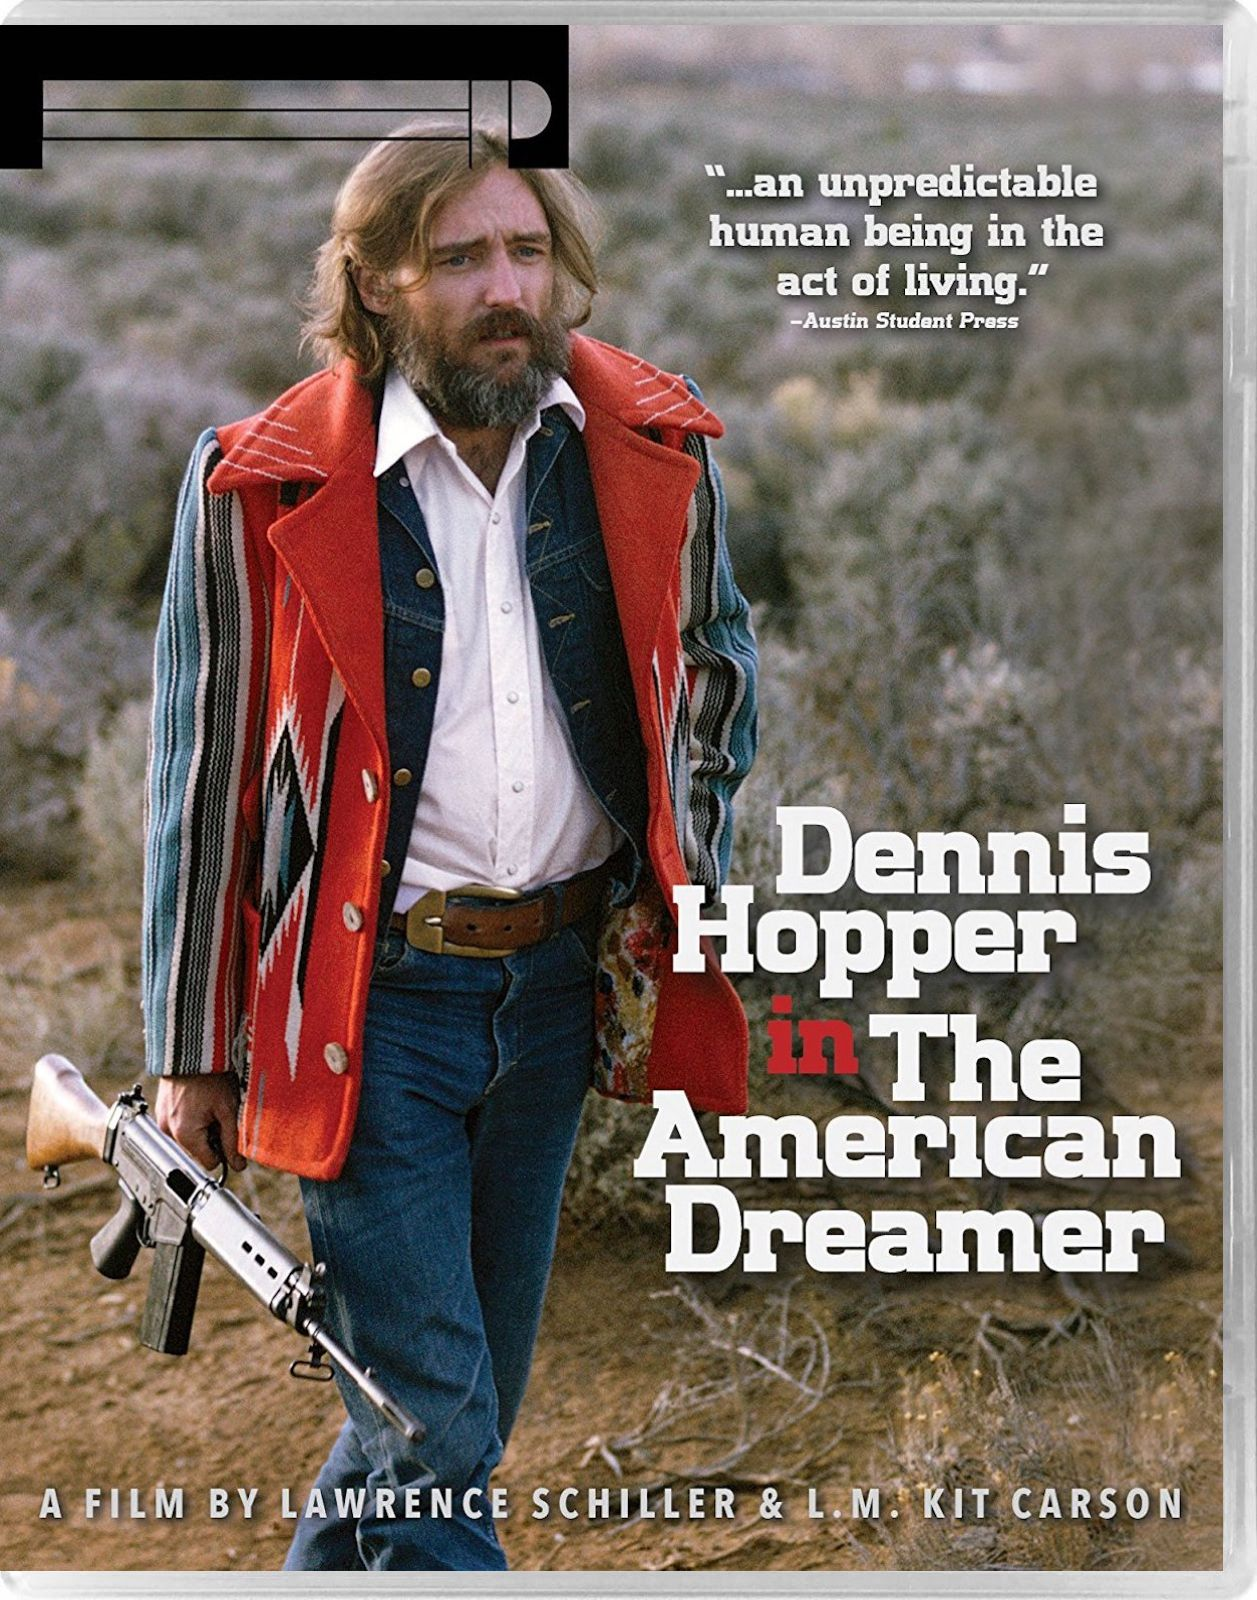 DENNIS HOPPER IN THE AMERICAN DREAMER ETIQUETTE PICTURES